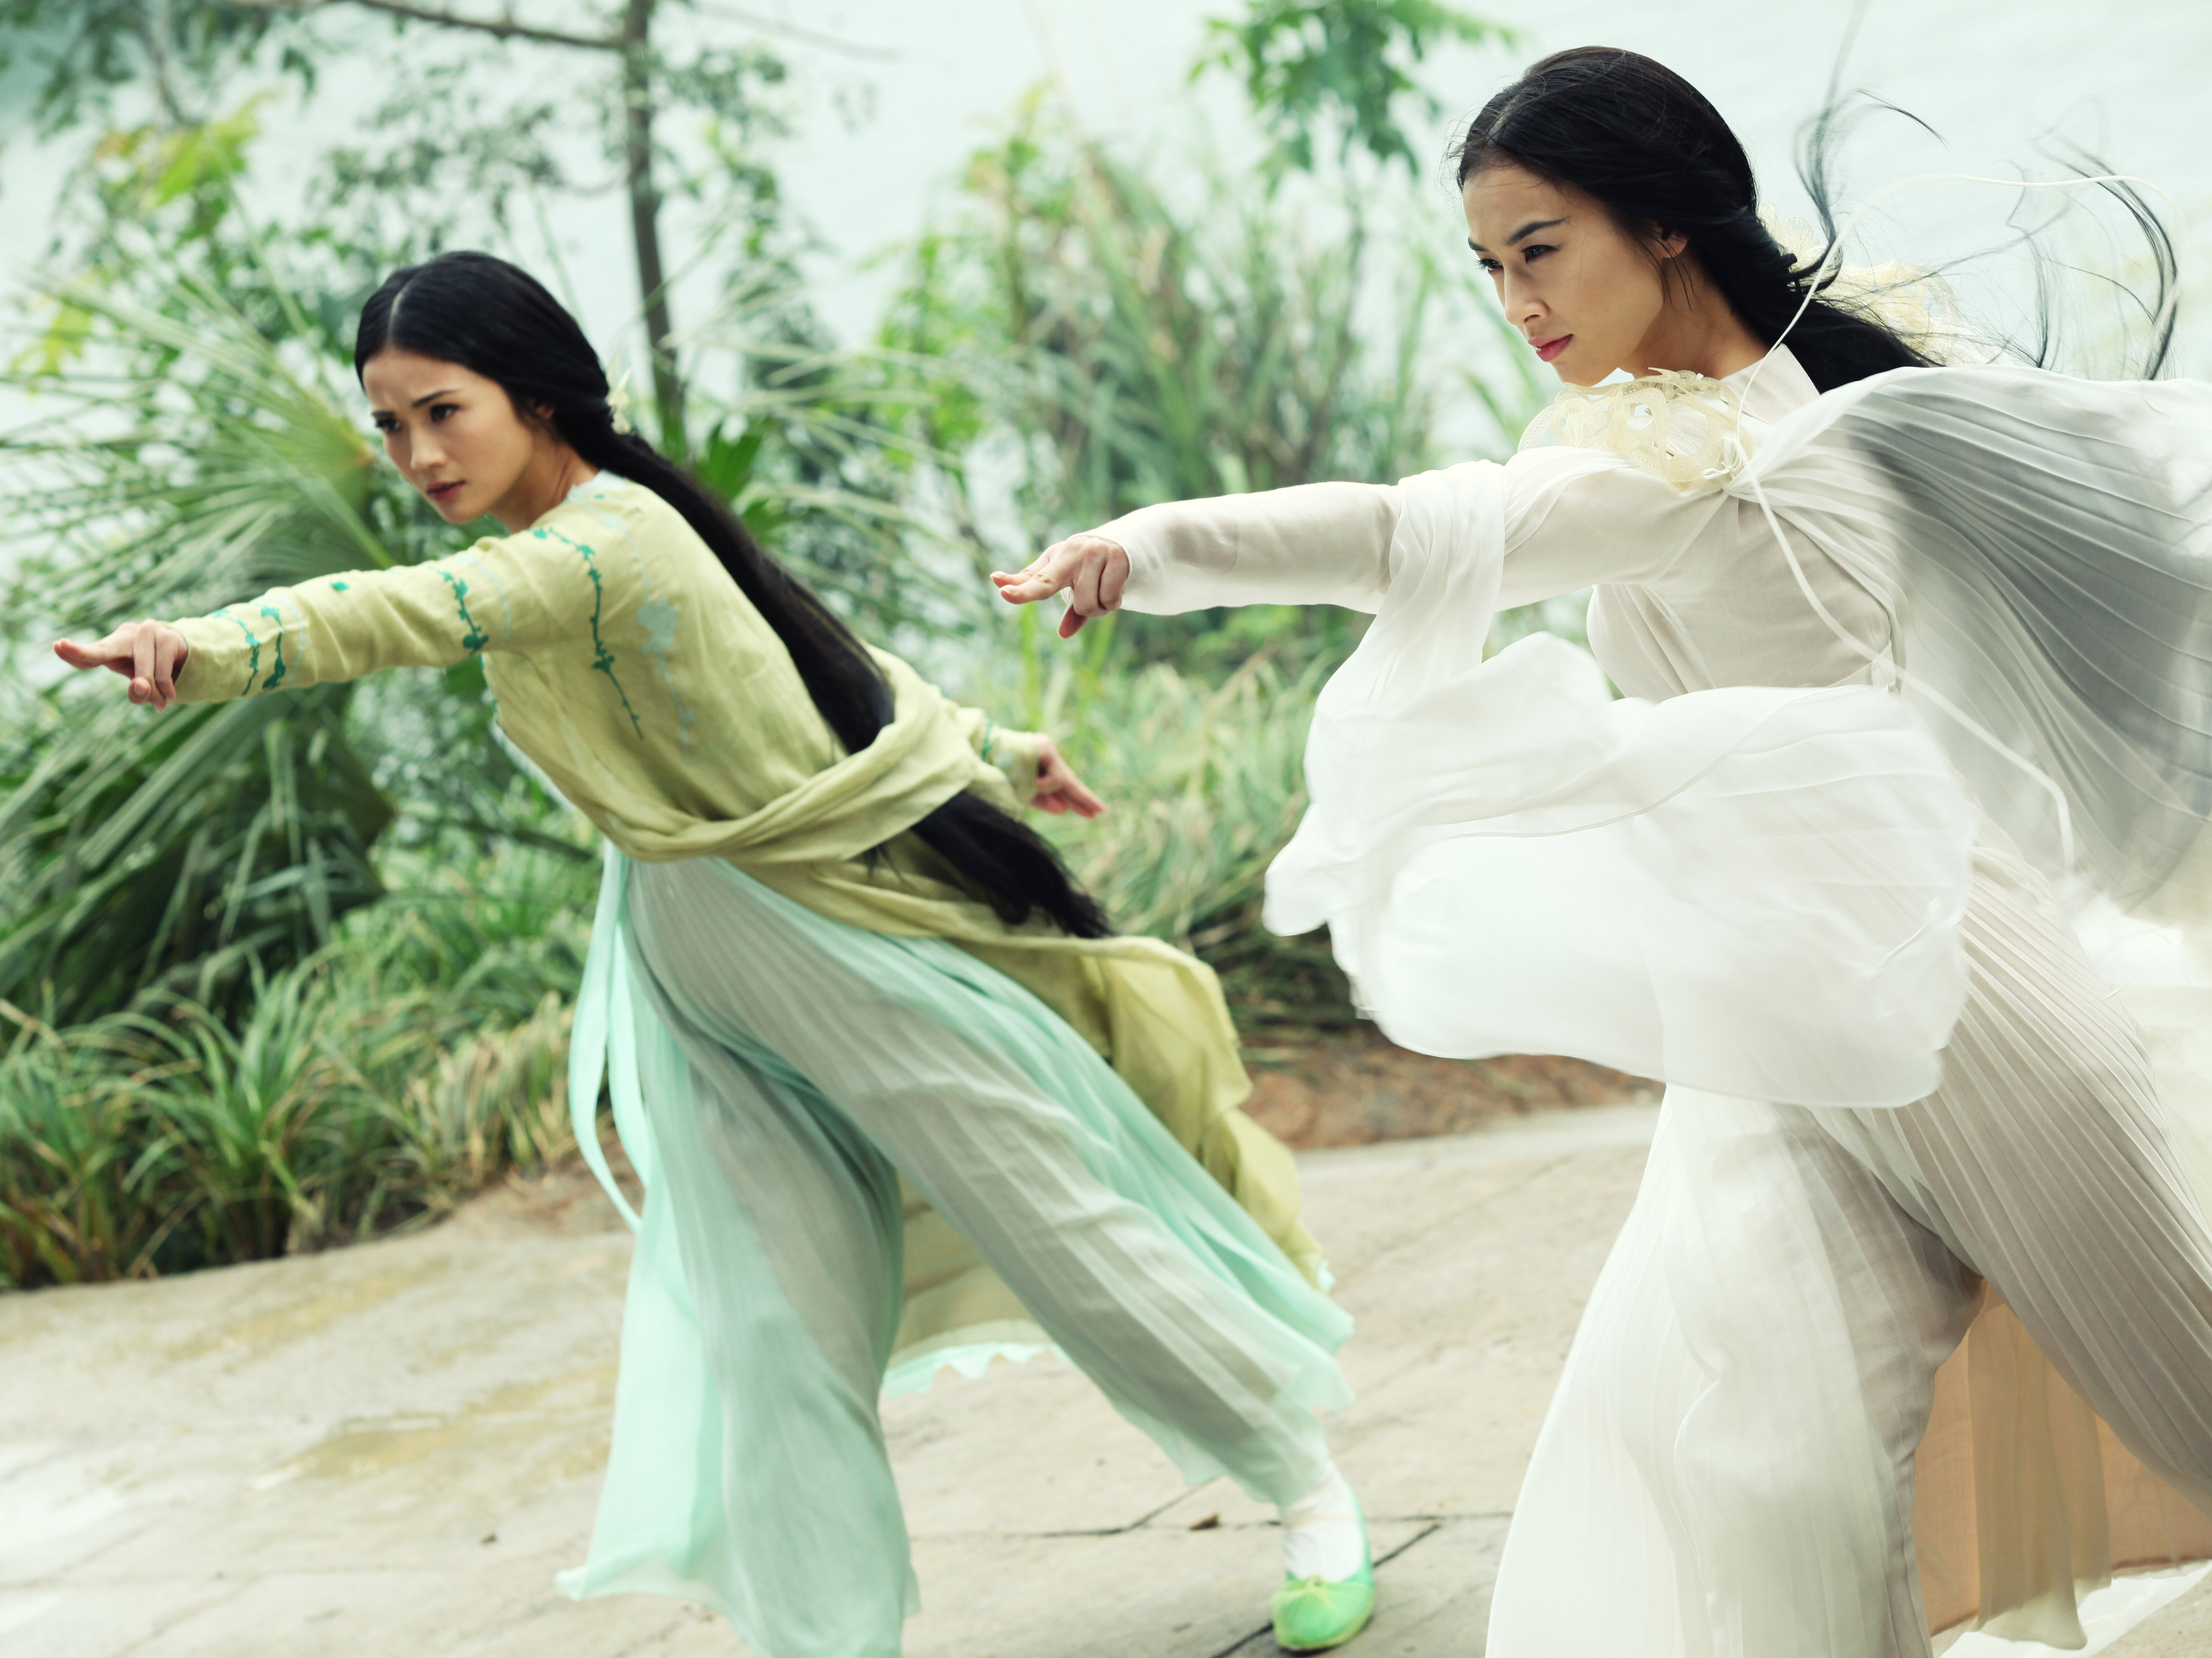 A sorcerer a white snake and lots of cgi magic ncpr news the demon snake sisters charlene choi and eva huang disguise themselves as beautiful women in the sorcerer and the white snake voltagebd Choice Image